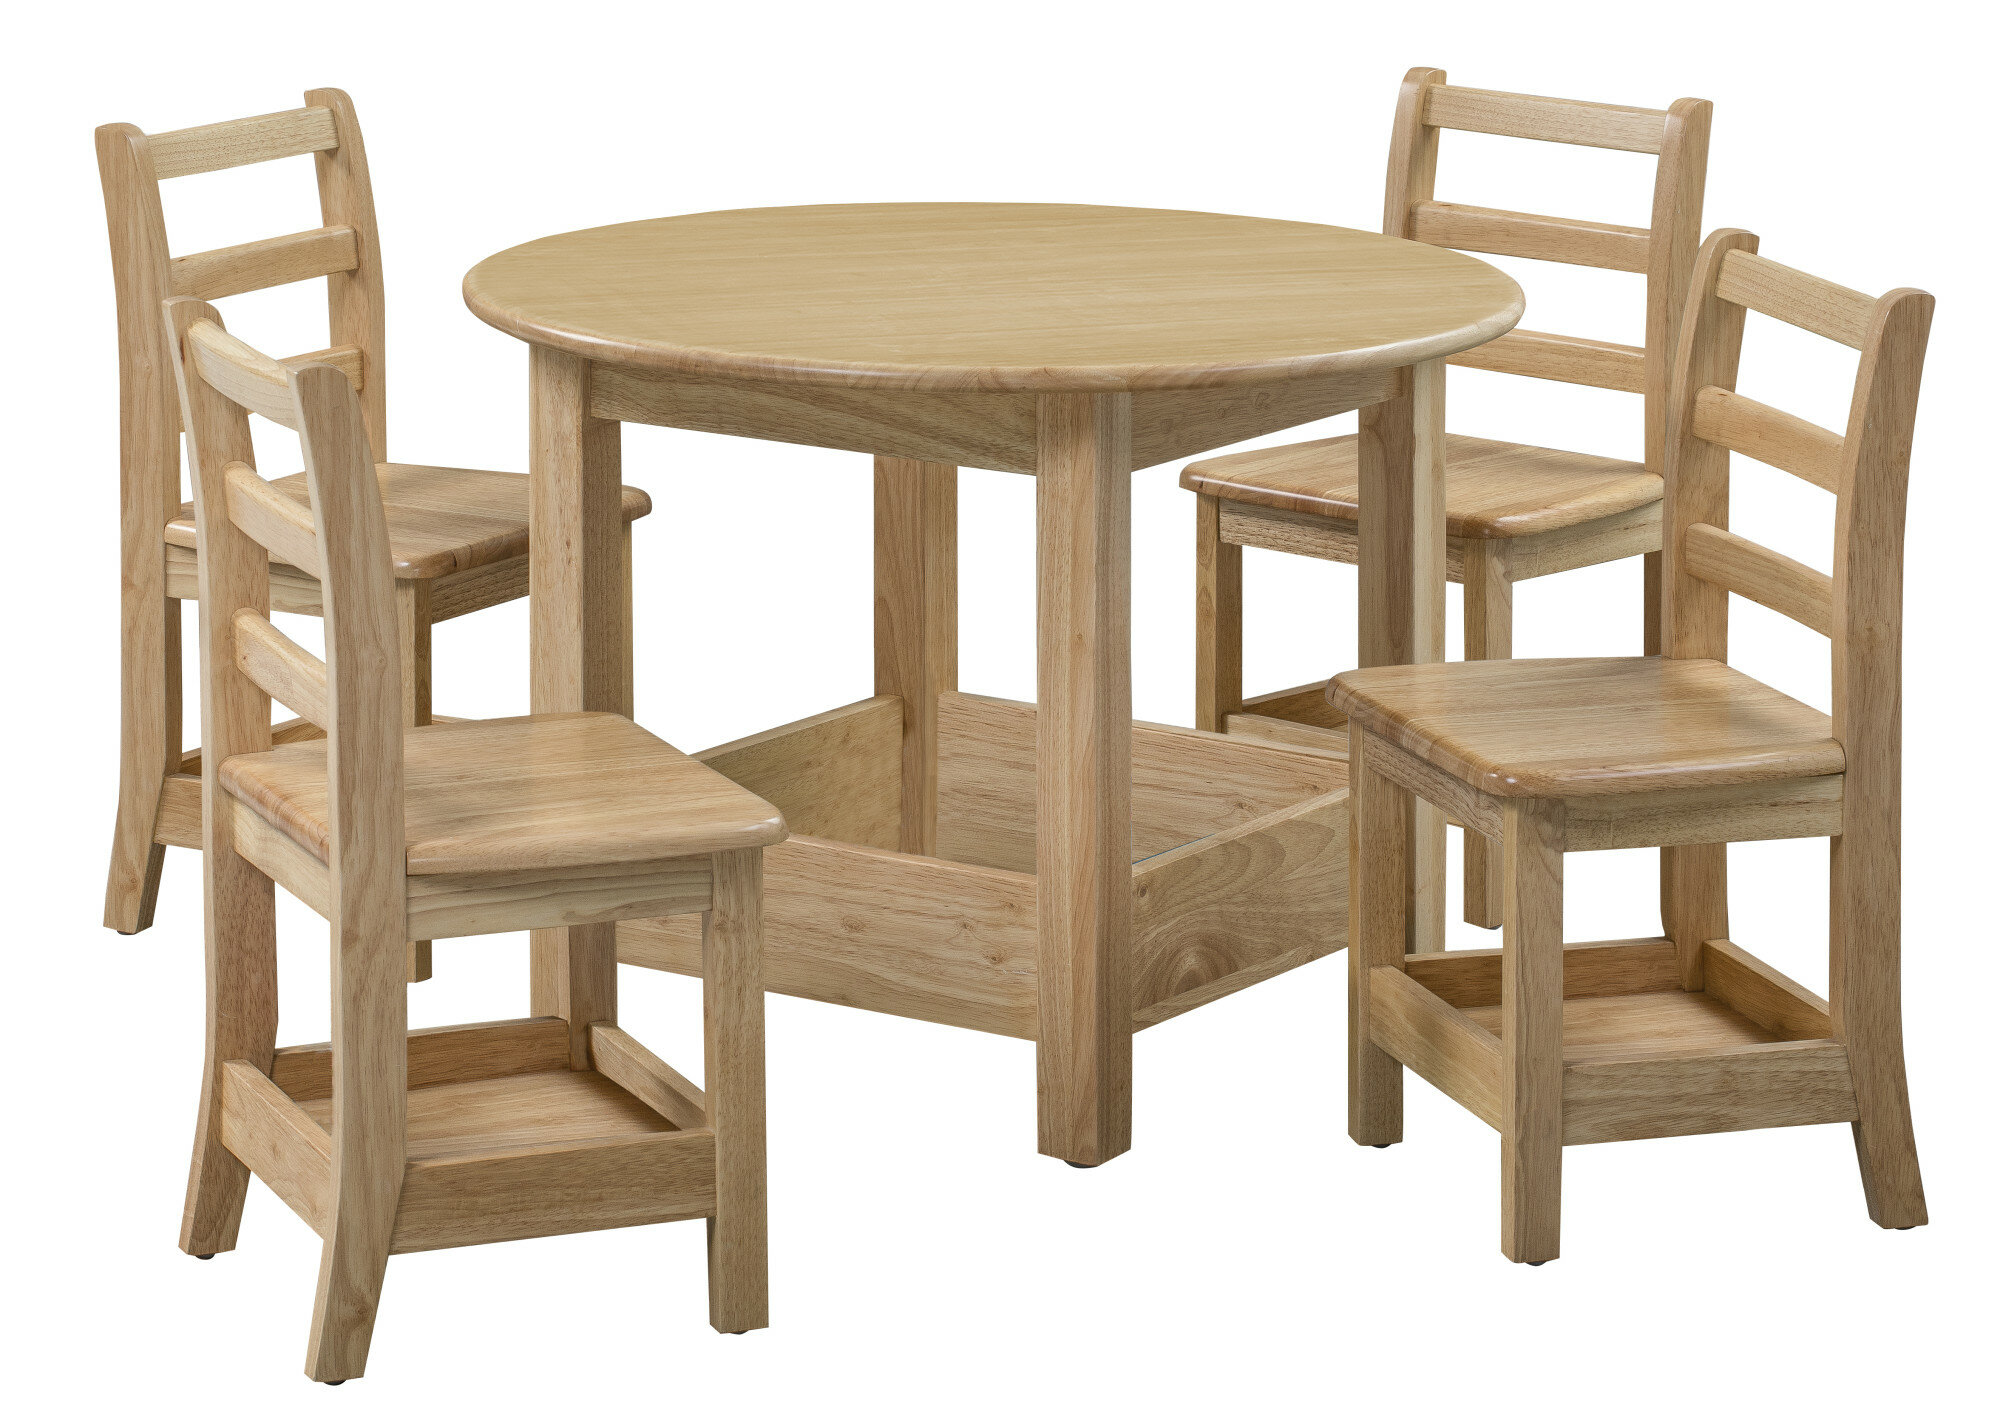 Ecr4kids Sit N Stash Kids 5 Piece Writing Table And Chair Set